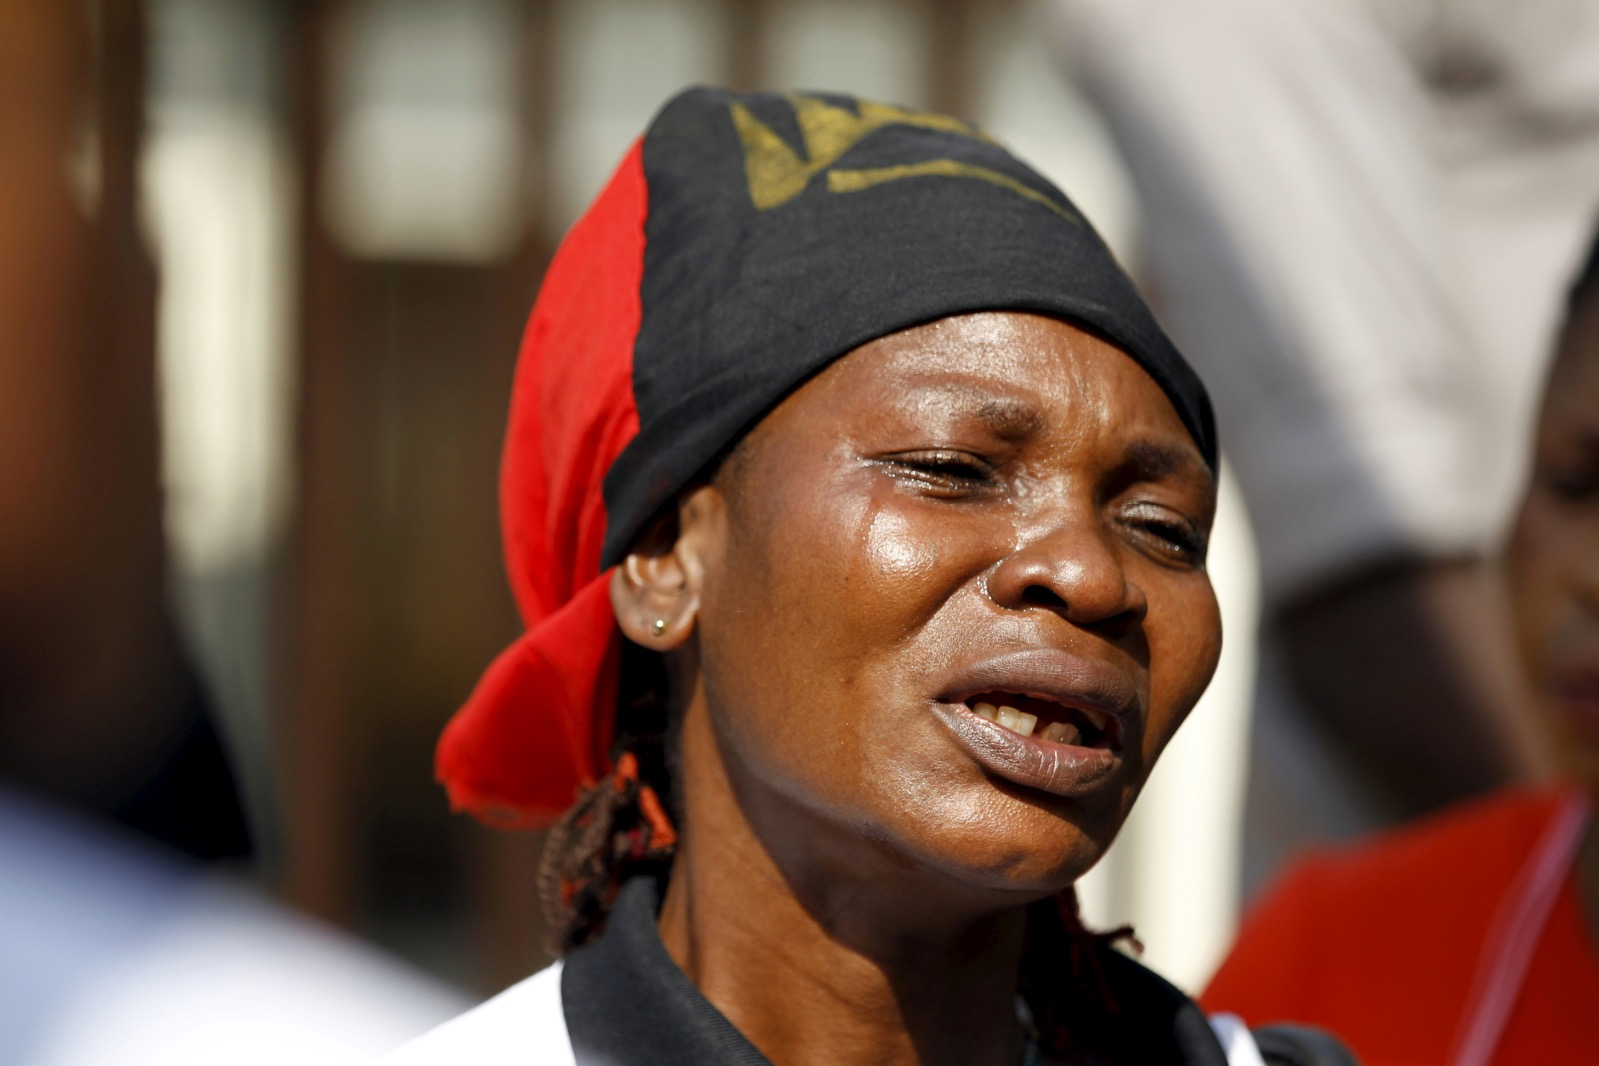 A Biafra supporter cries during a rally in support of Nnamdi Kanu in Abuja, December 1, 2015. Dutch lawyers have filed a case against Nigerian President Muhammadu Buhari for alleged crimes against humanity against pro-Biafran activists. | Afolabi Sotunde/Reuters